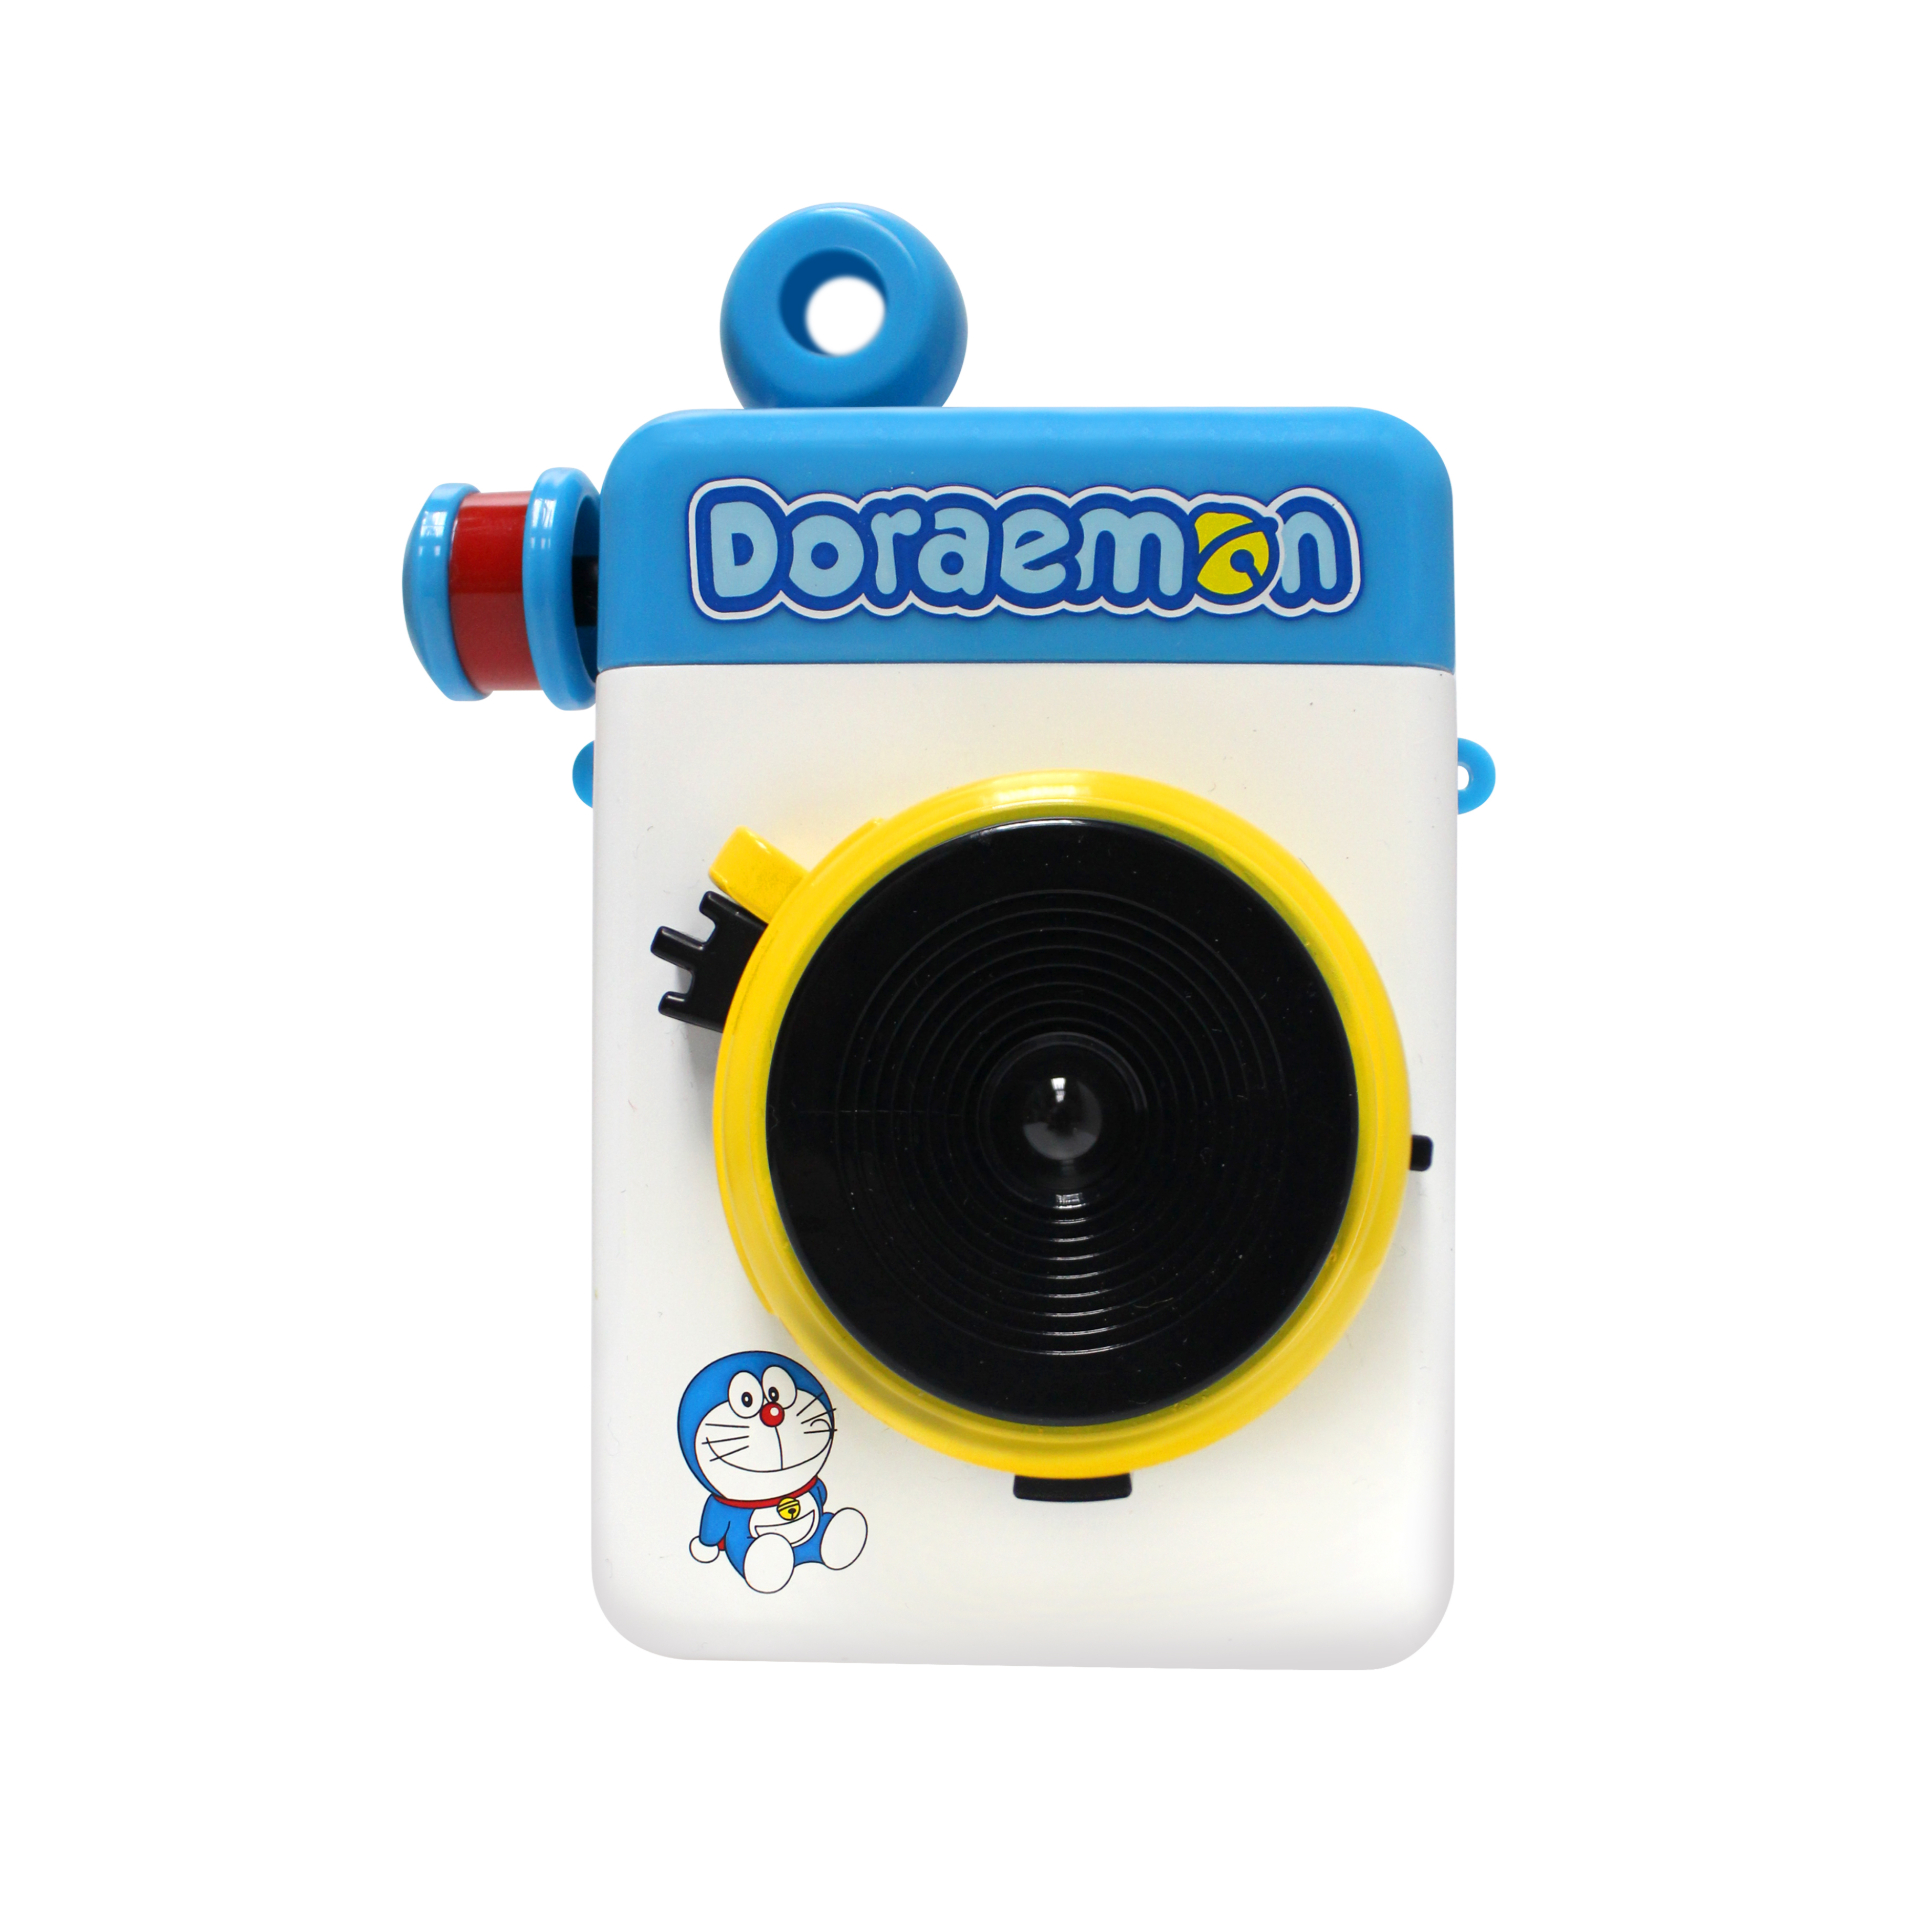 Image of Escura Instant 60s Hand-powered Instant Camera with ES-60FL External Flash (Blue) - Doraemon